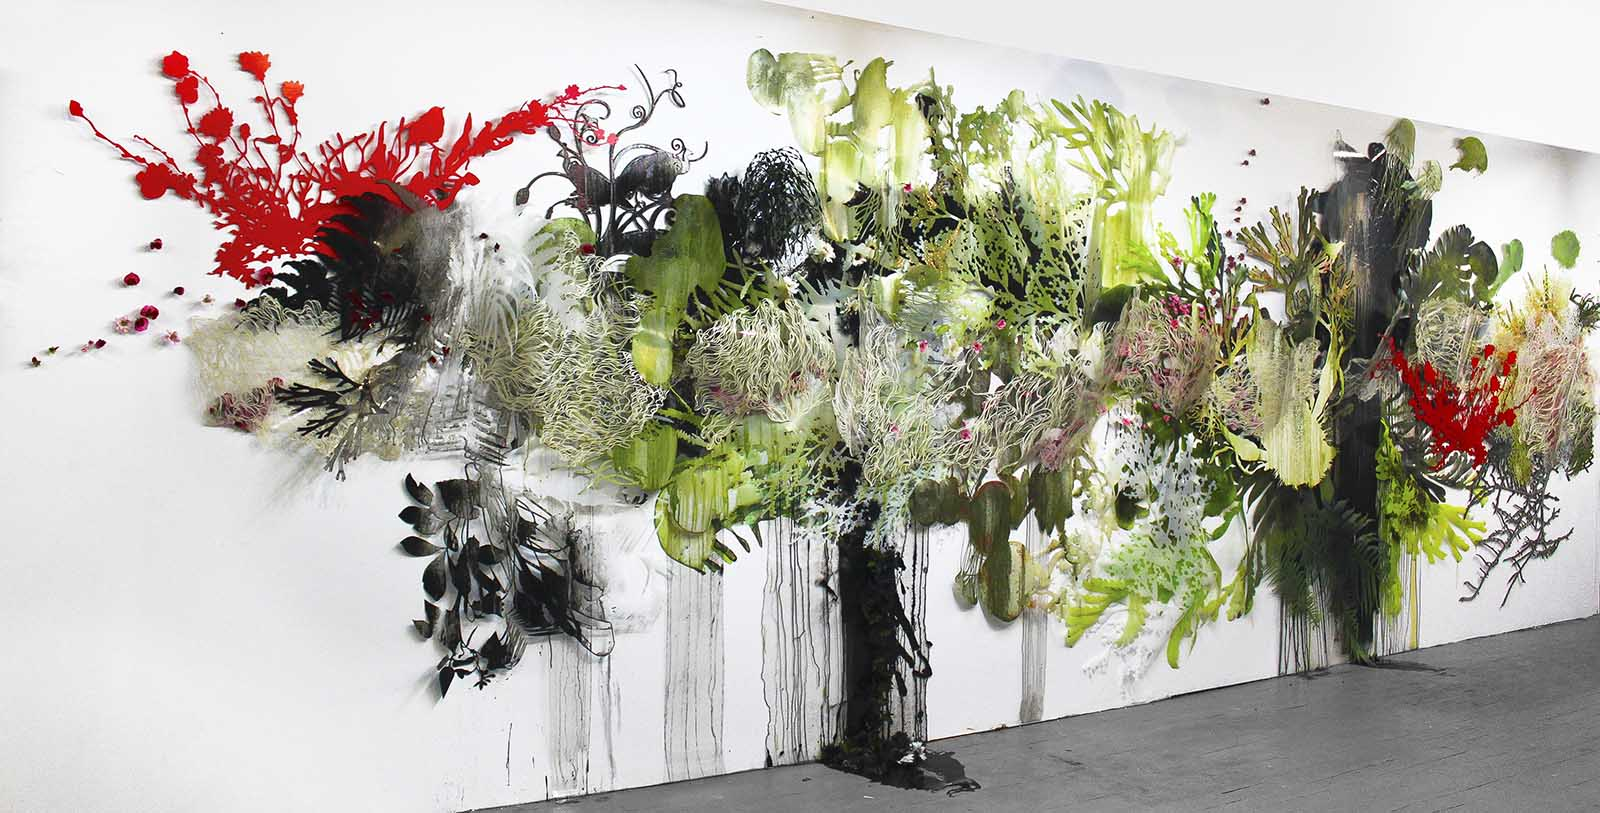 Wall sculpture with plant-like appearance